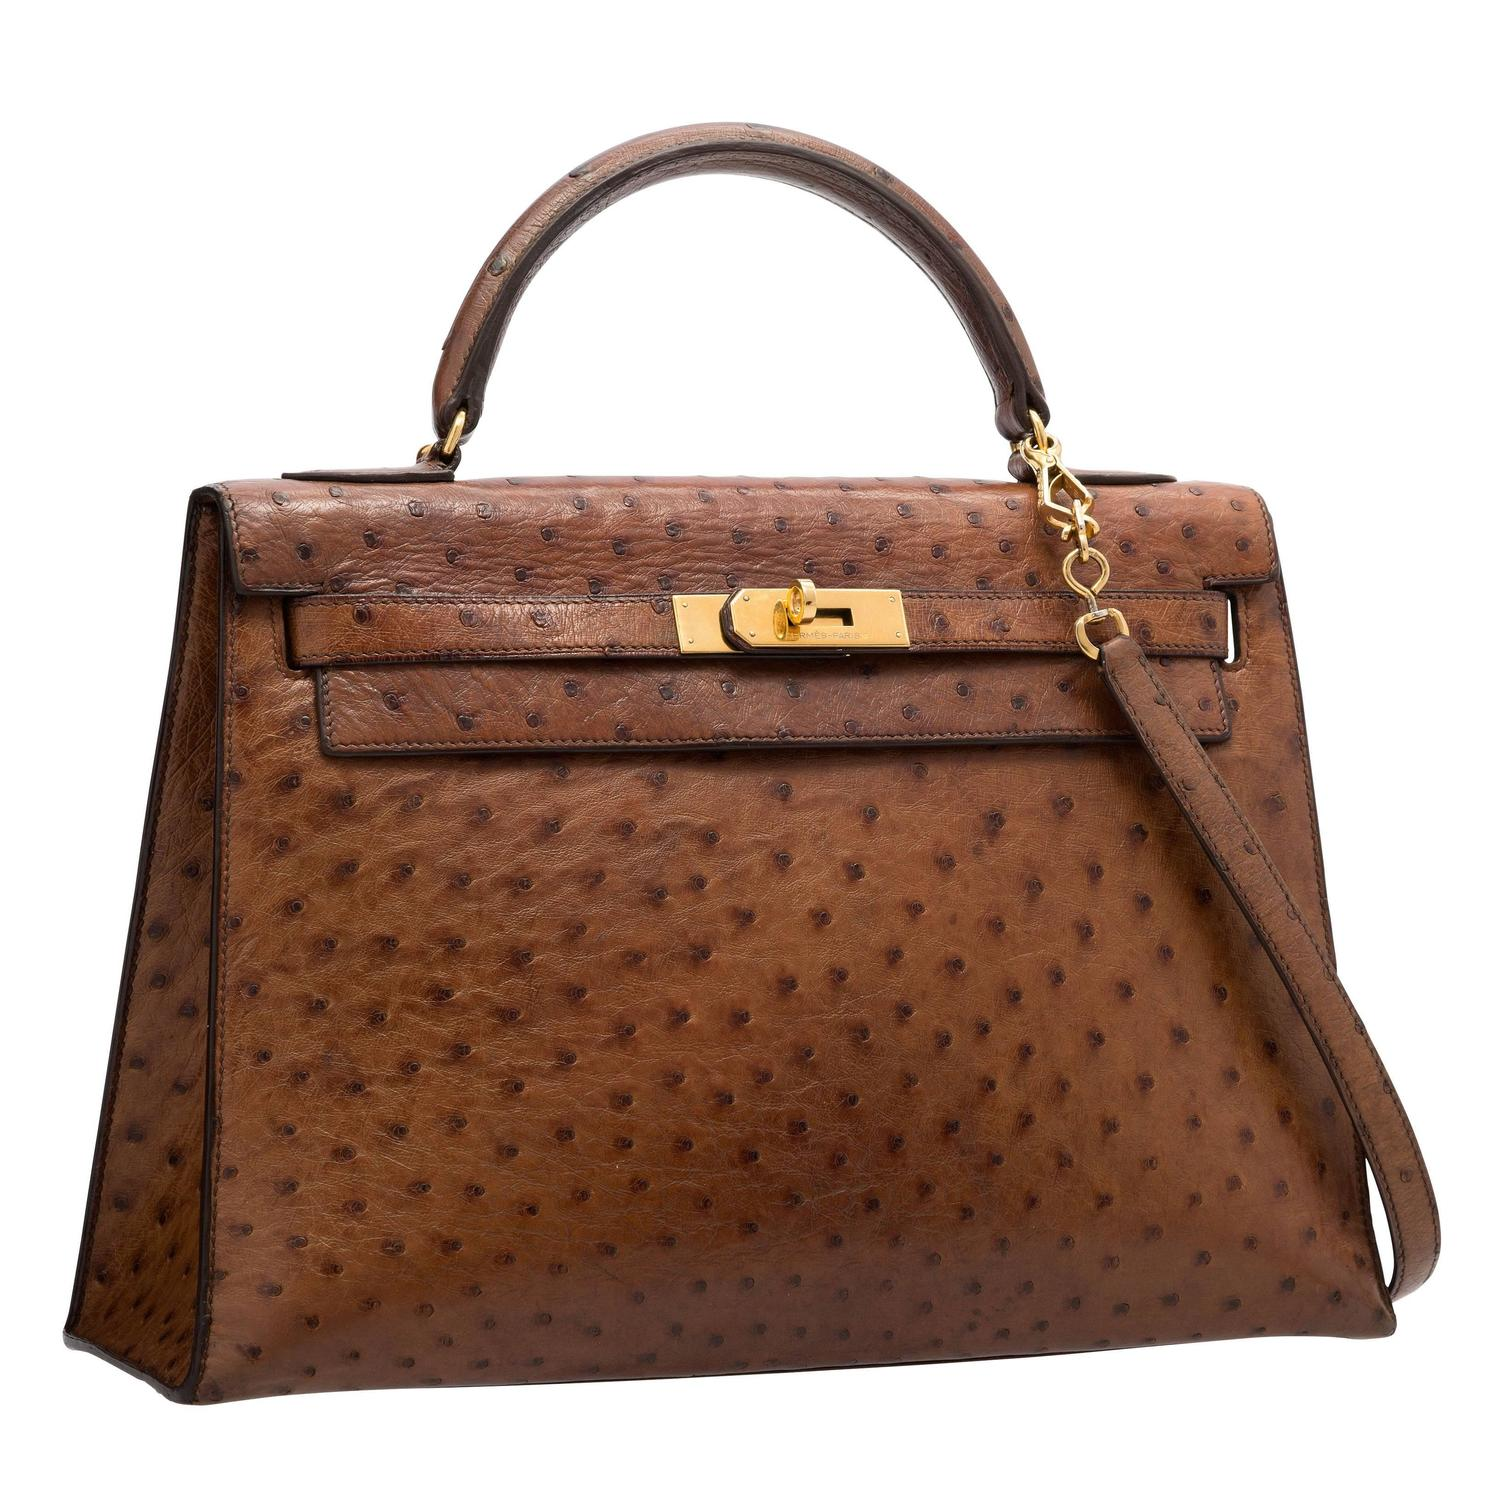 Hermes 32cm Noisette Ostrich Sellier Kelly Bag with Gold Hardware ...